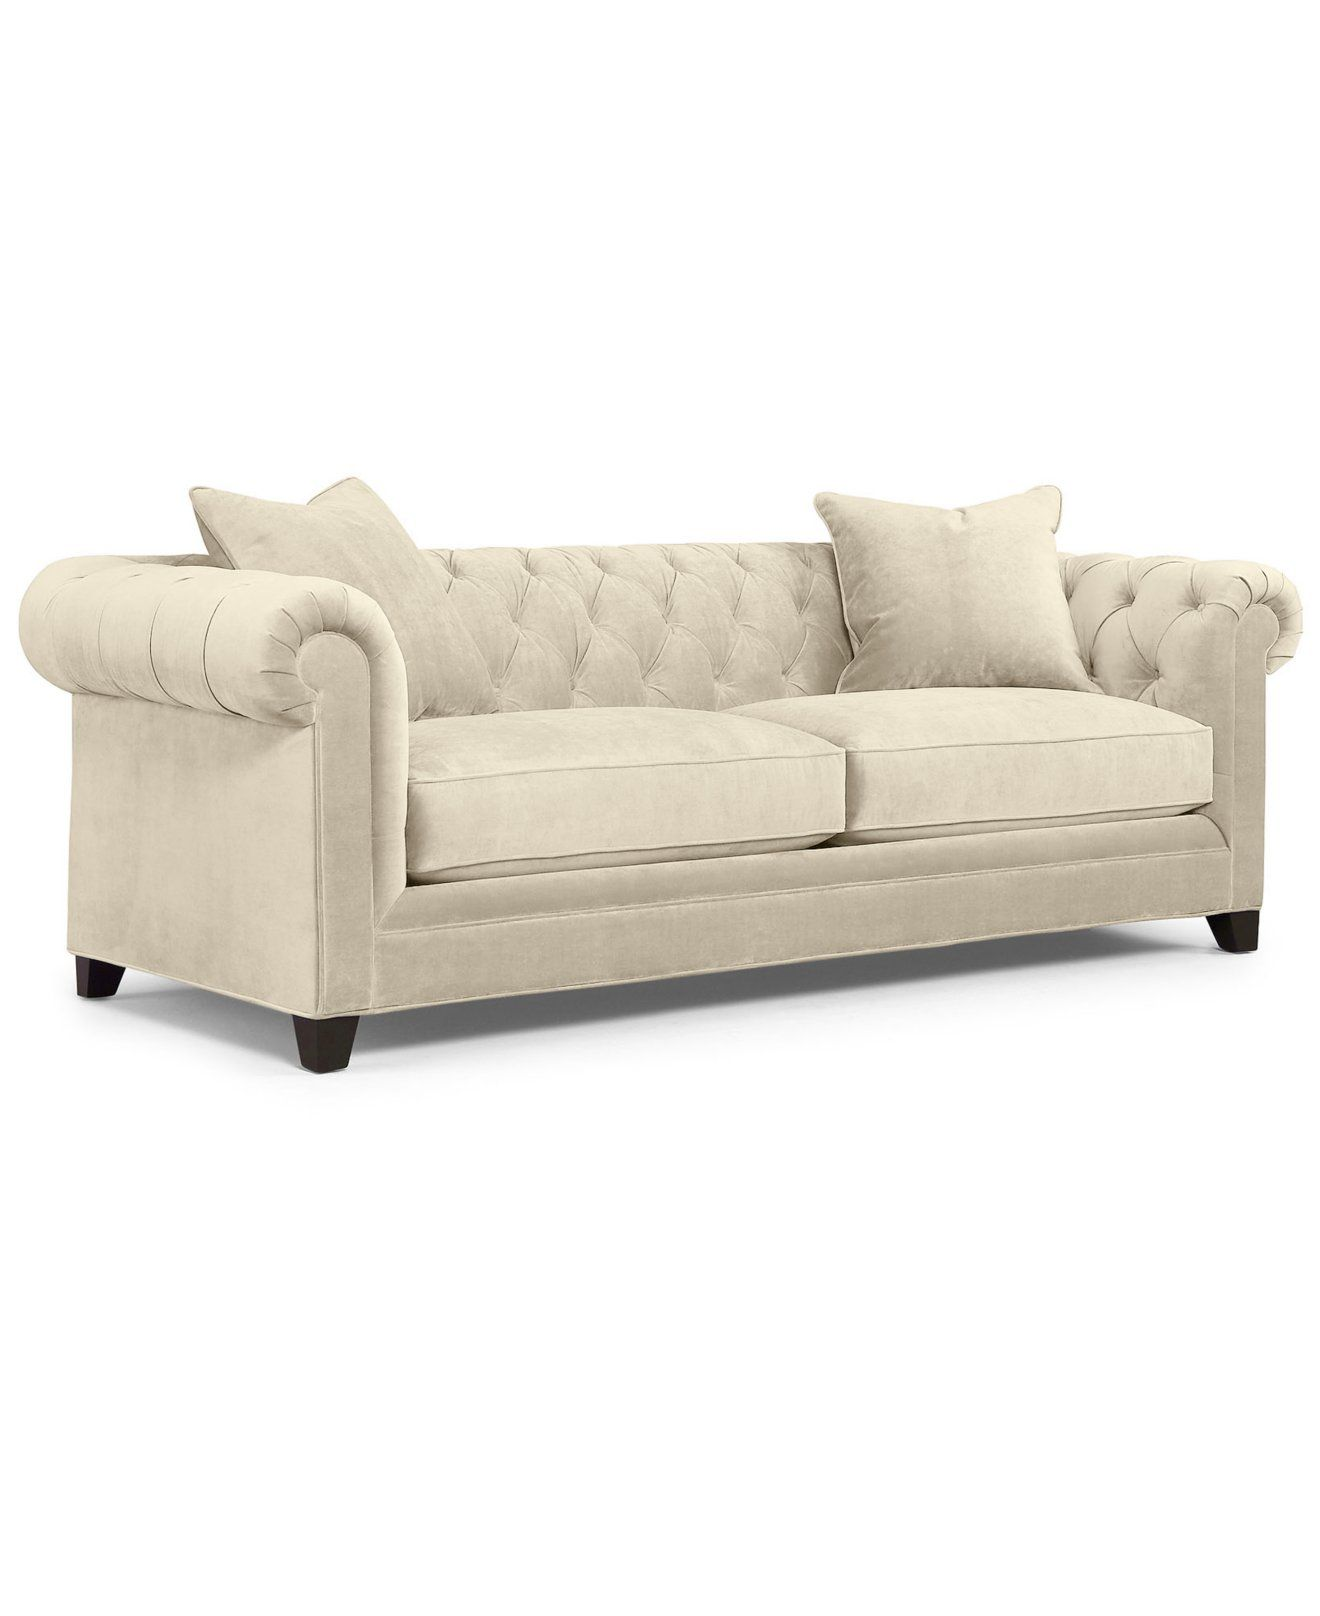 Tribecca Home Knightsbridge Beige Linen Tufted Scroll Arm Chesterfield Sofa Multi Use Set Martha Stewart Collection Saybridge 92 Quot Fabric